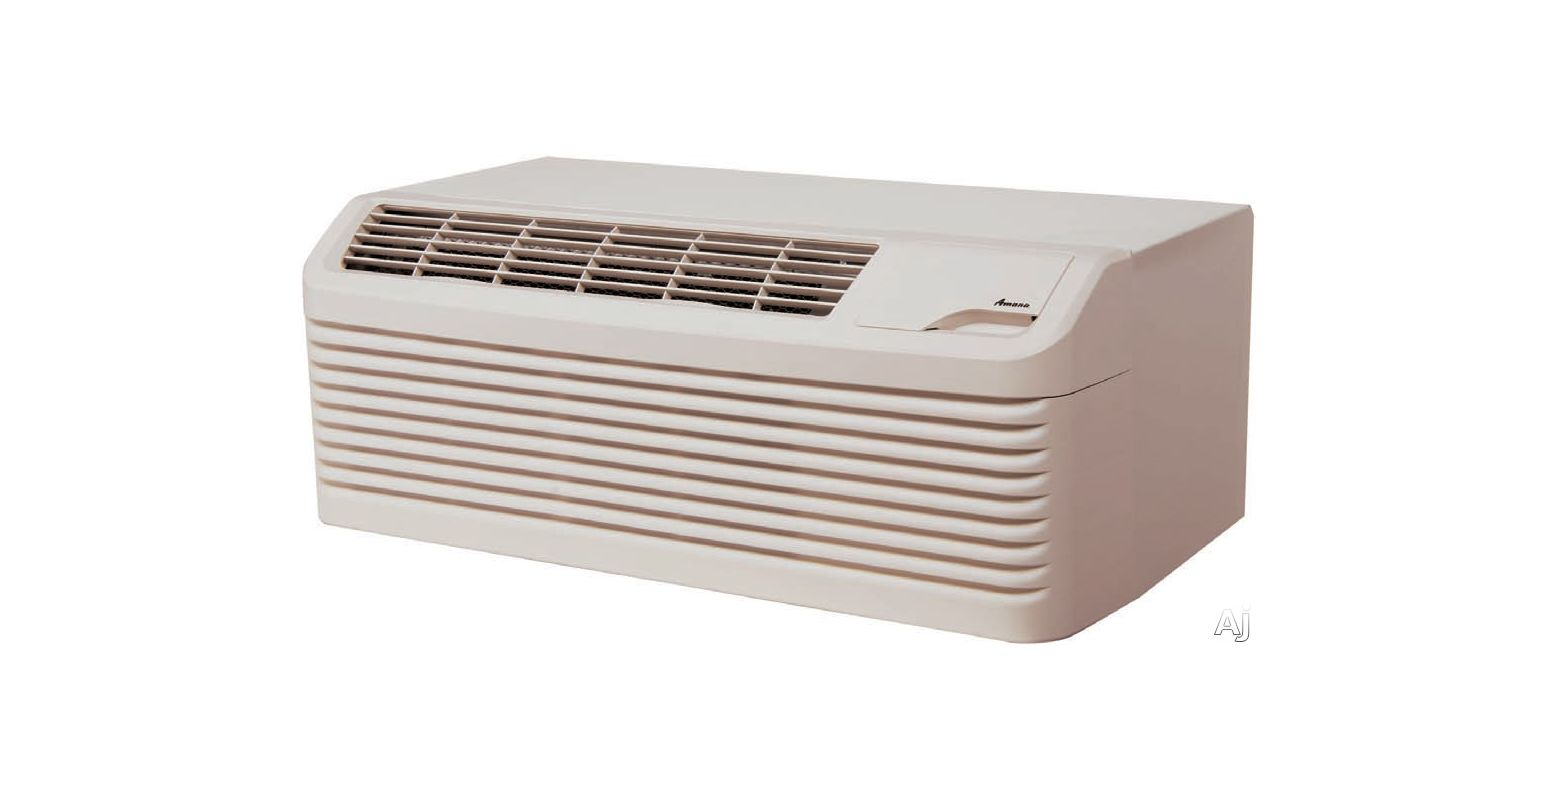 Amana PTH153G50AXXX 14,200 BTU Packaged Terminal Air Conditioner with 13800 BTU photo